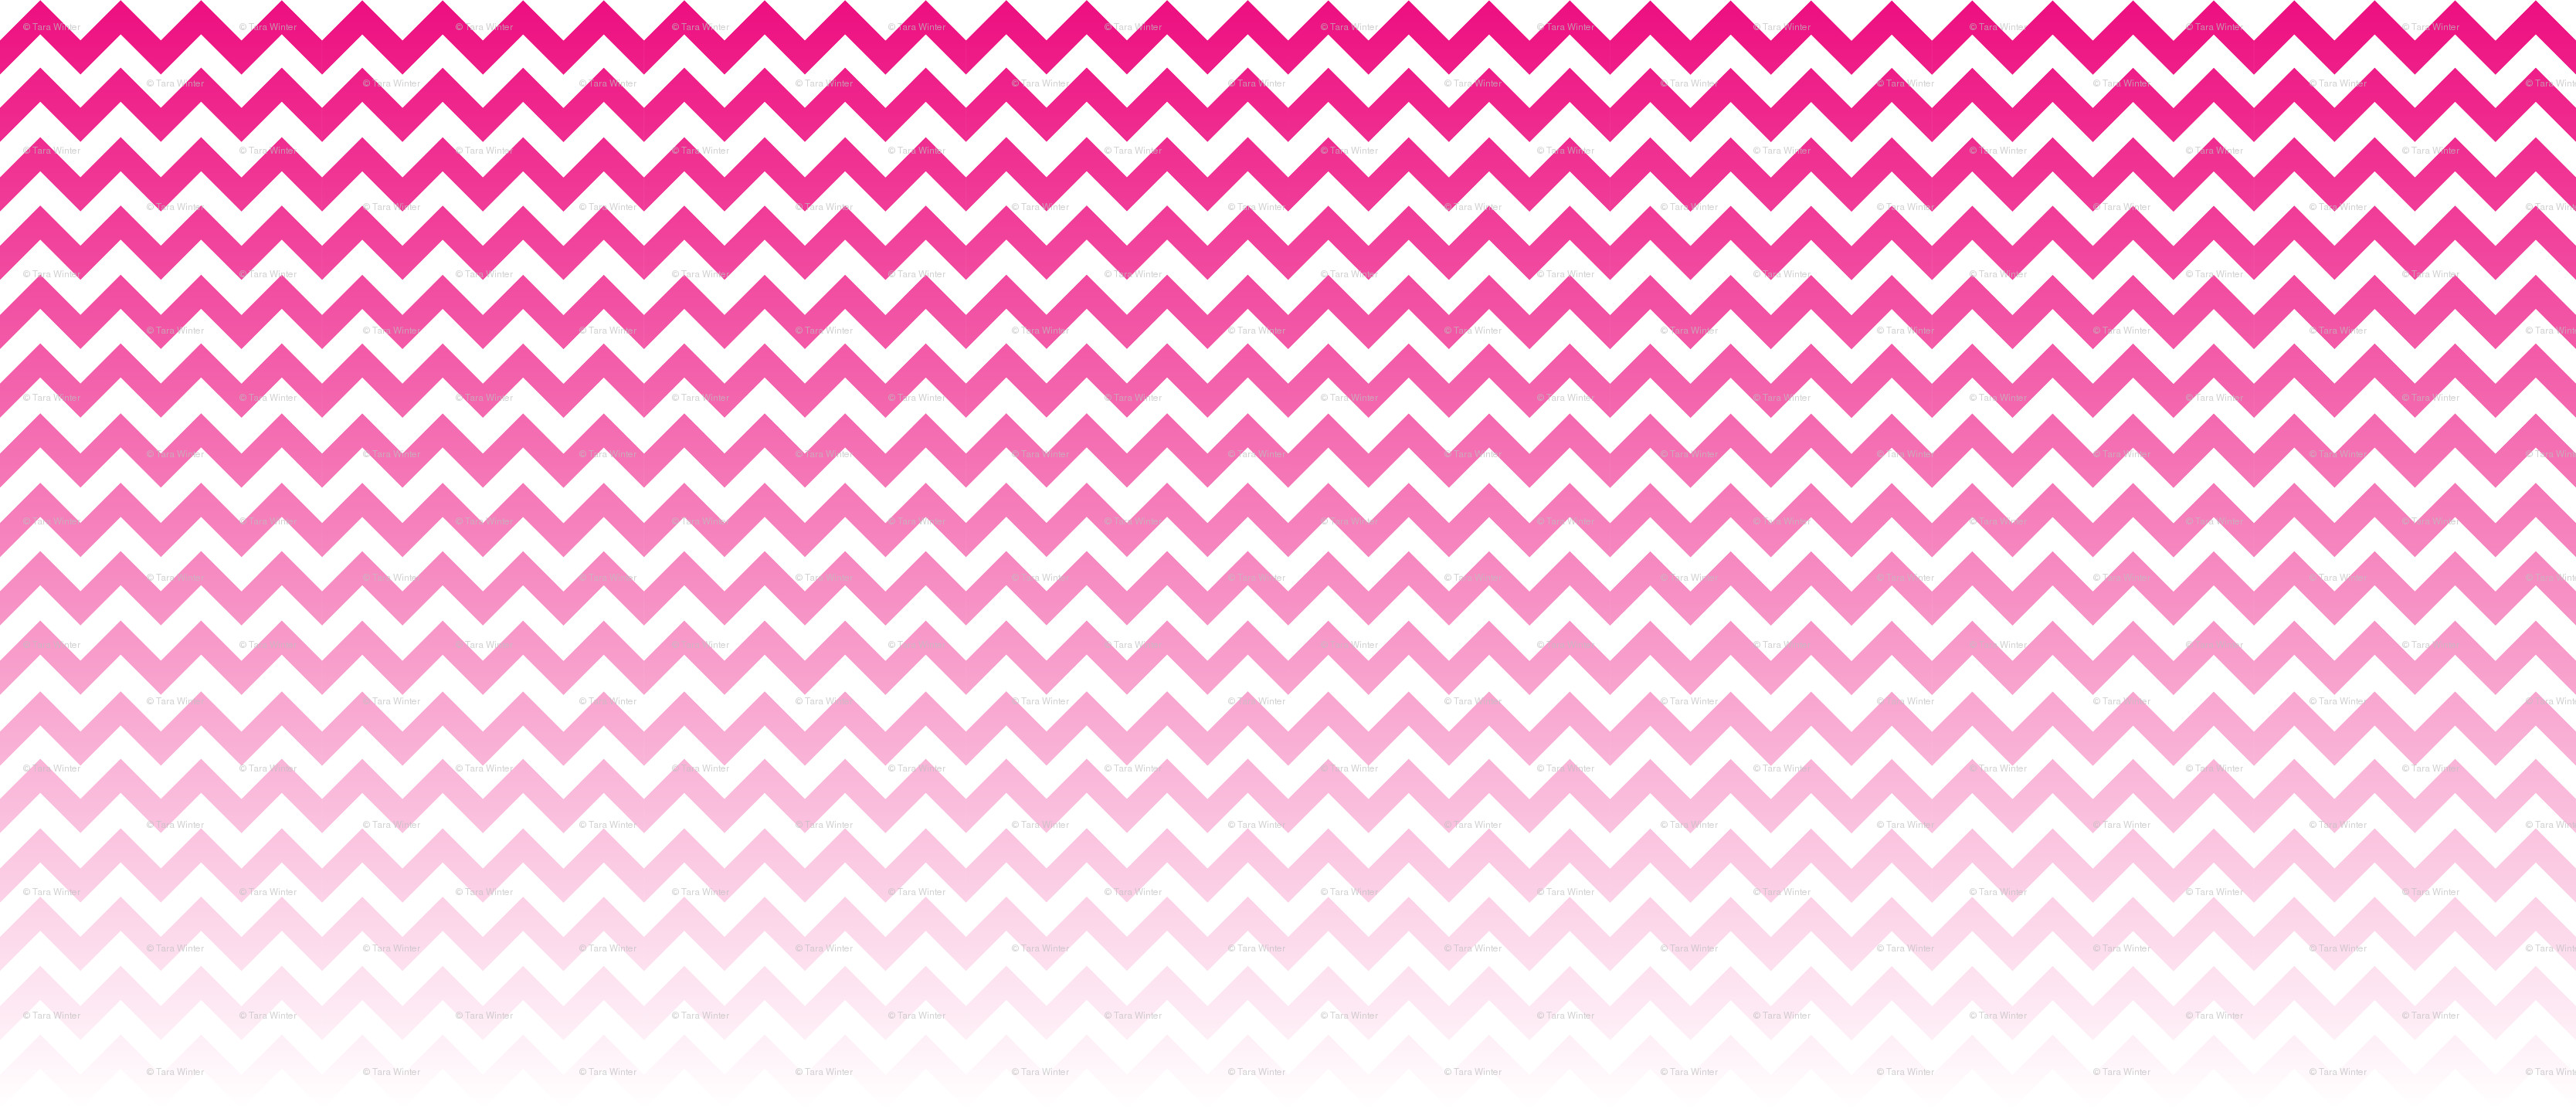 3335x1436 Ombre Chevron Wallpaper Rrrrhot_pink_ombre_chevron.svg .